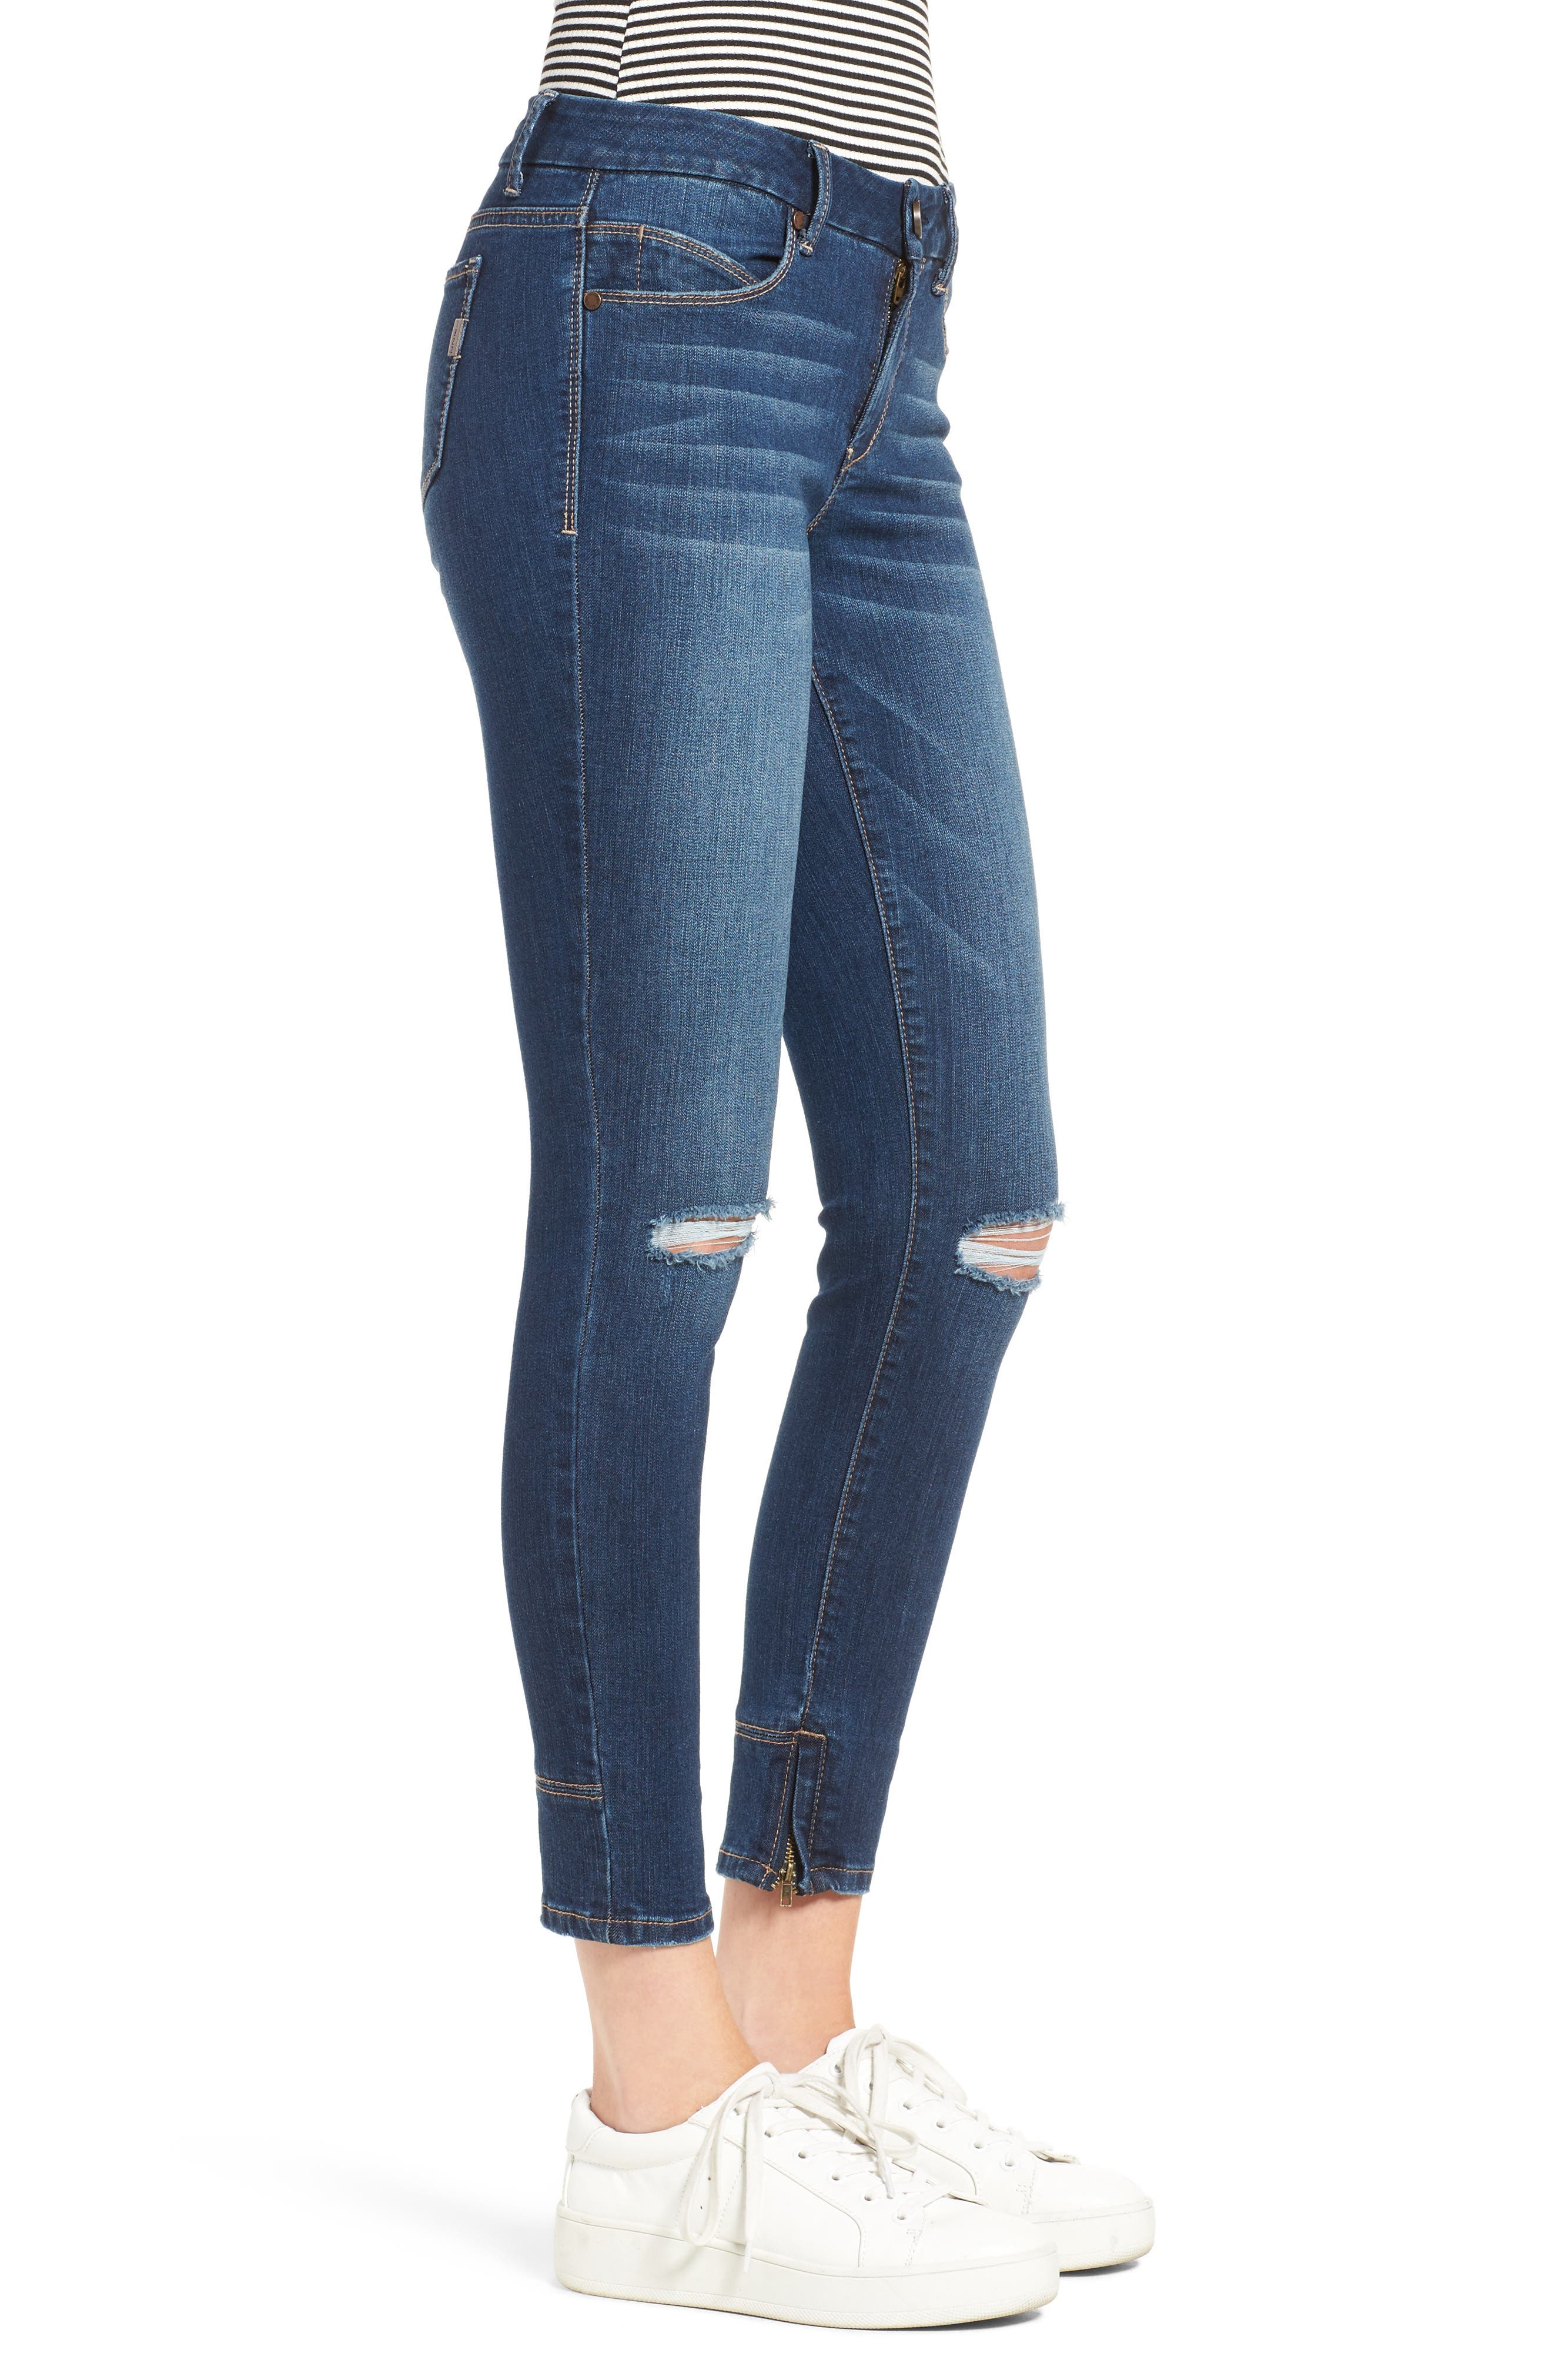 Alternate Image 3  - 1822 Denim Ankle Skinny Jeans (Athens)